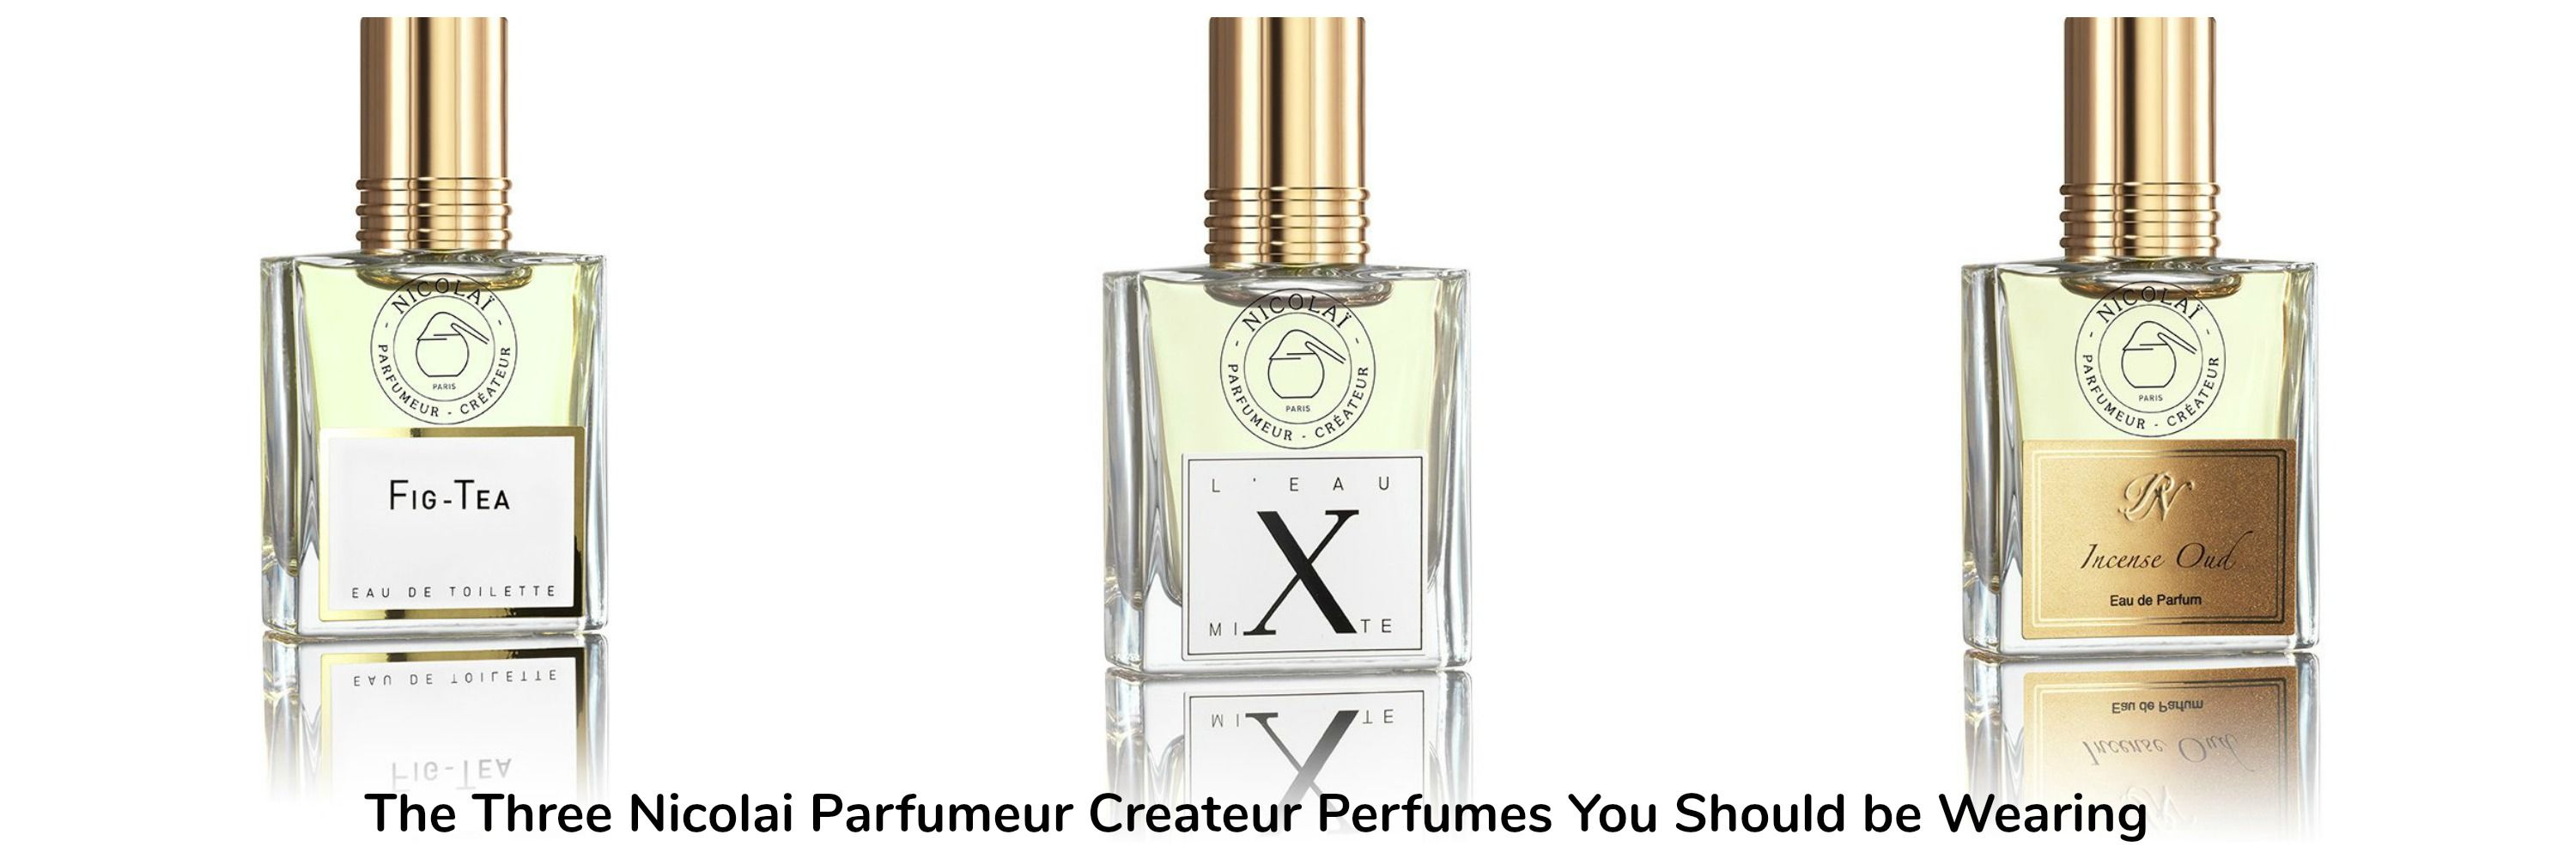 Nicola Parfumeur Fig Tea 2007 L Eau Mixte 2010 Incense Oud 2016Perfume Reviews The 3 Perfumes You Should Be Wearing Draw